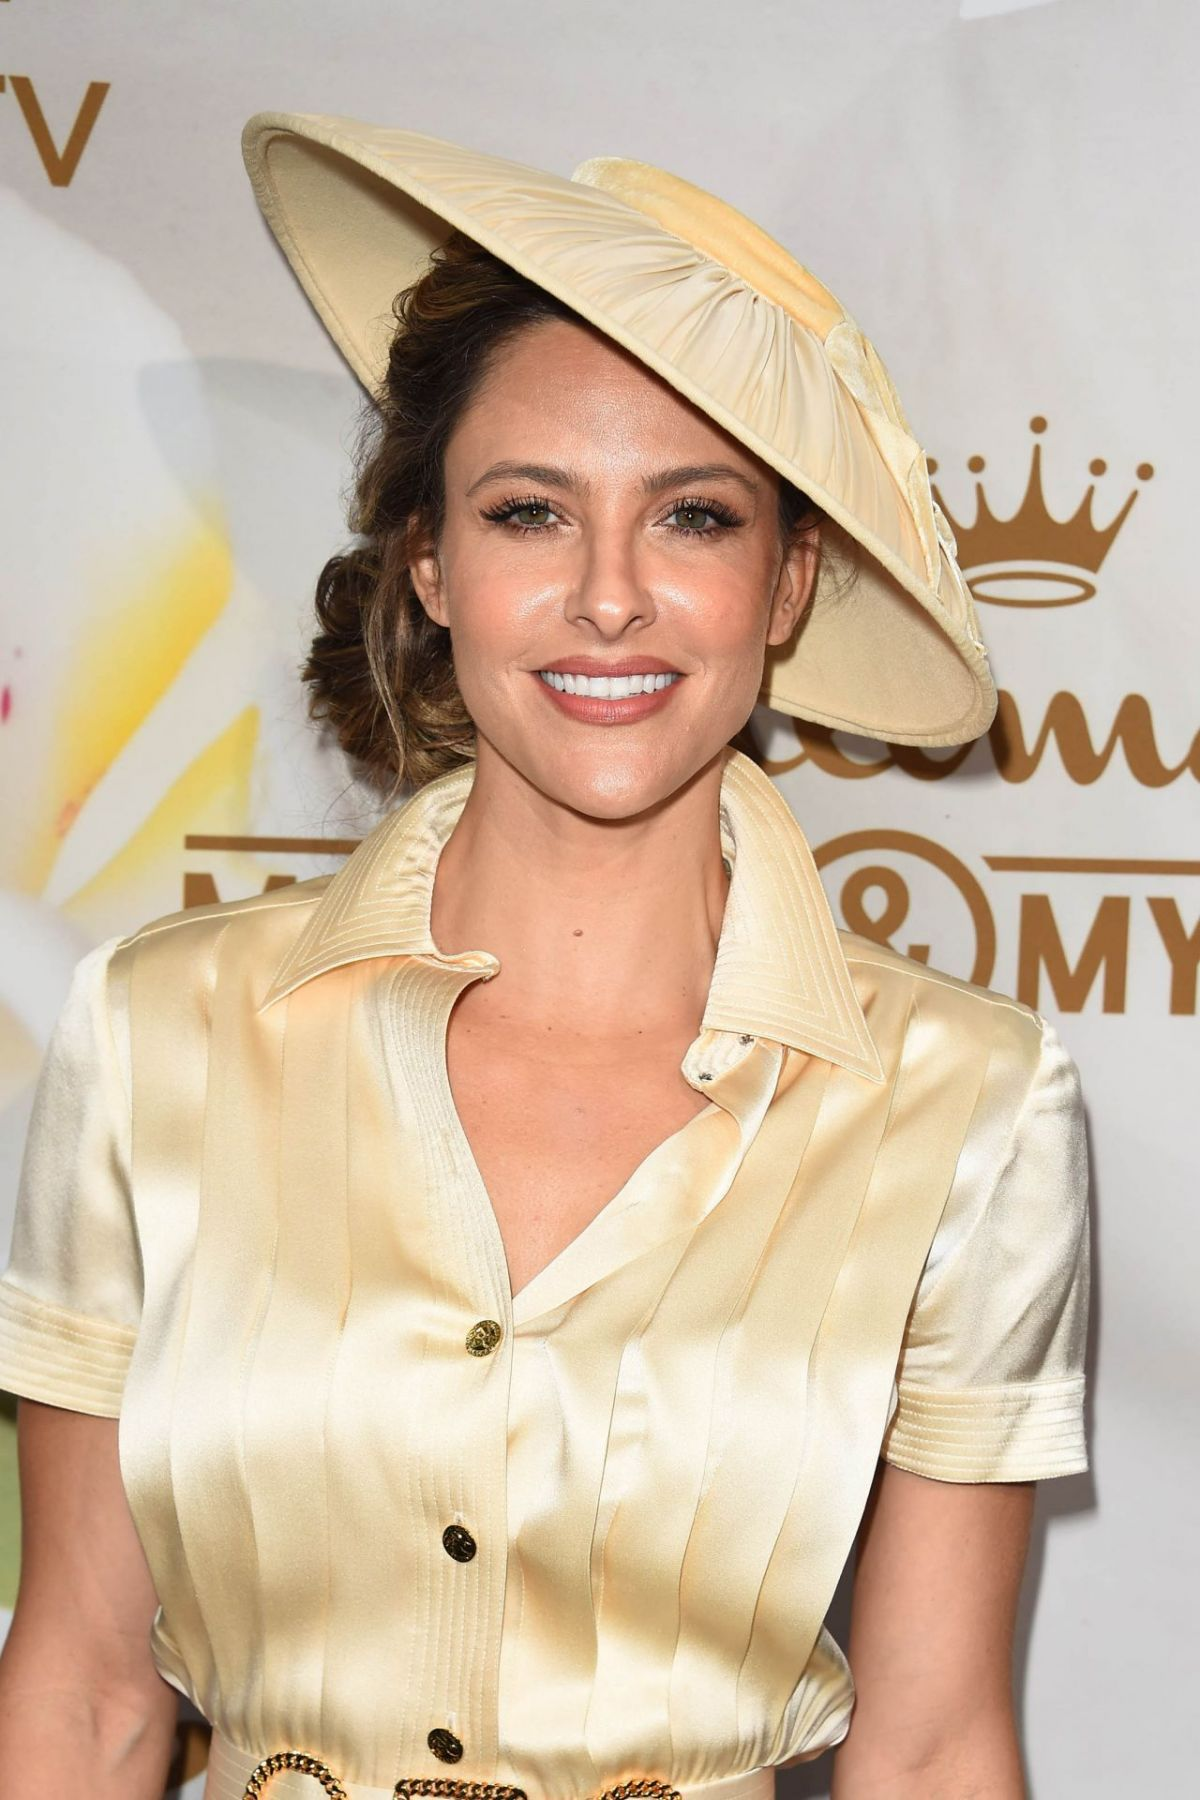 JILL WAGNER at Hallmark Event at TCA Summer Tour in Los Angeles 07/27/2017